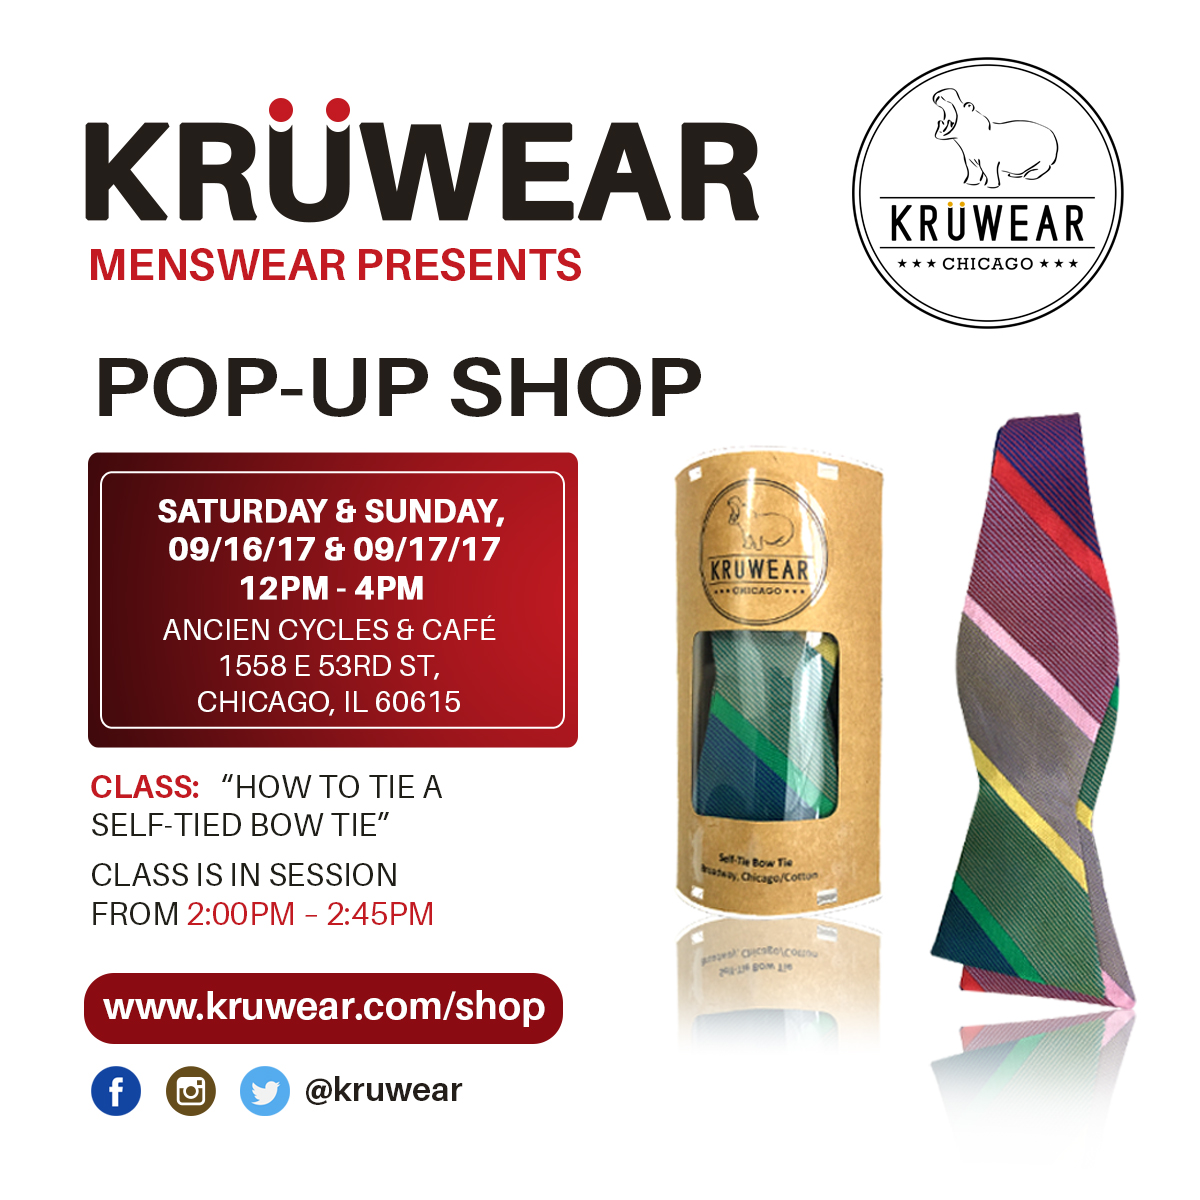 Kruwear Pop-Up Shop